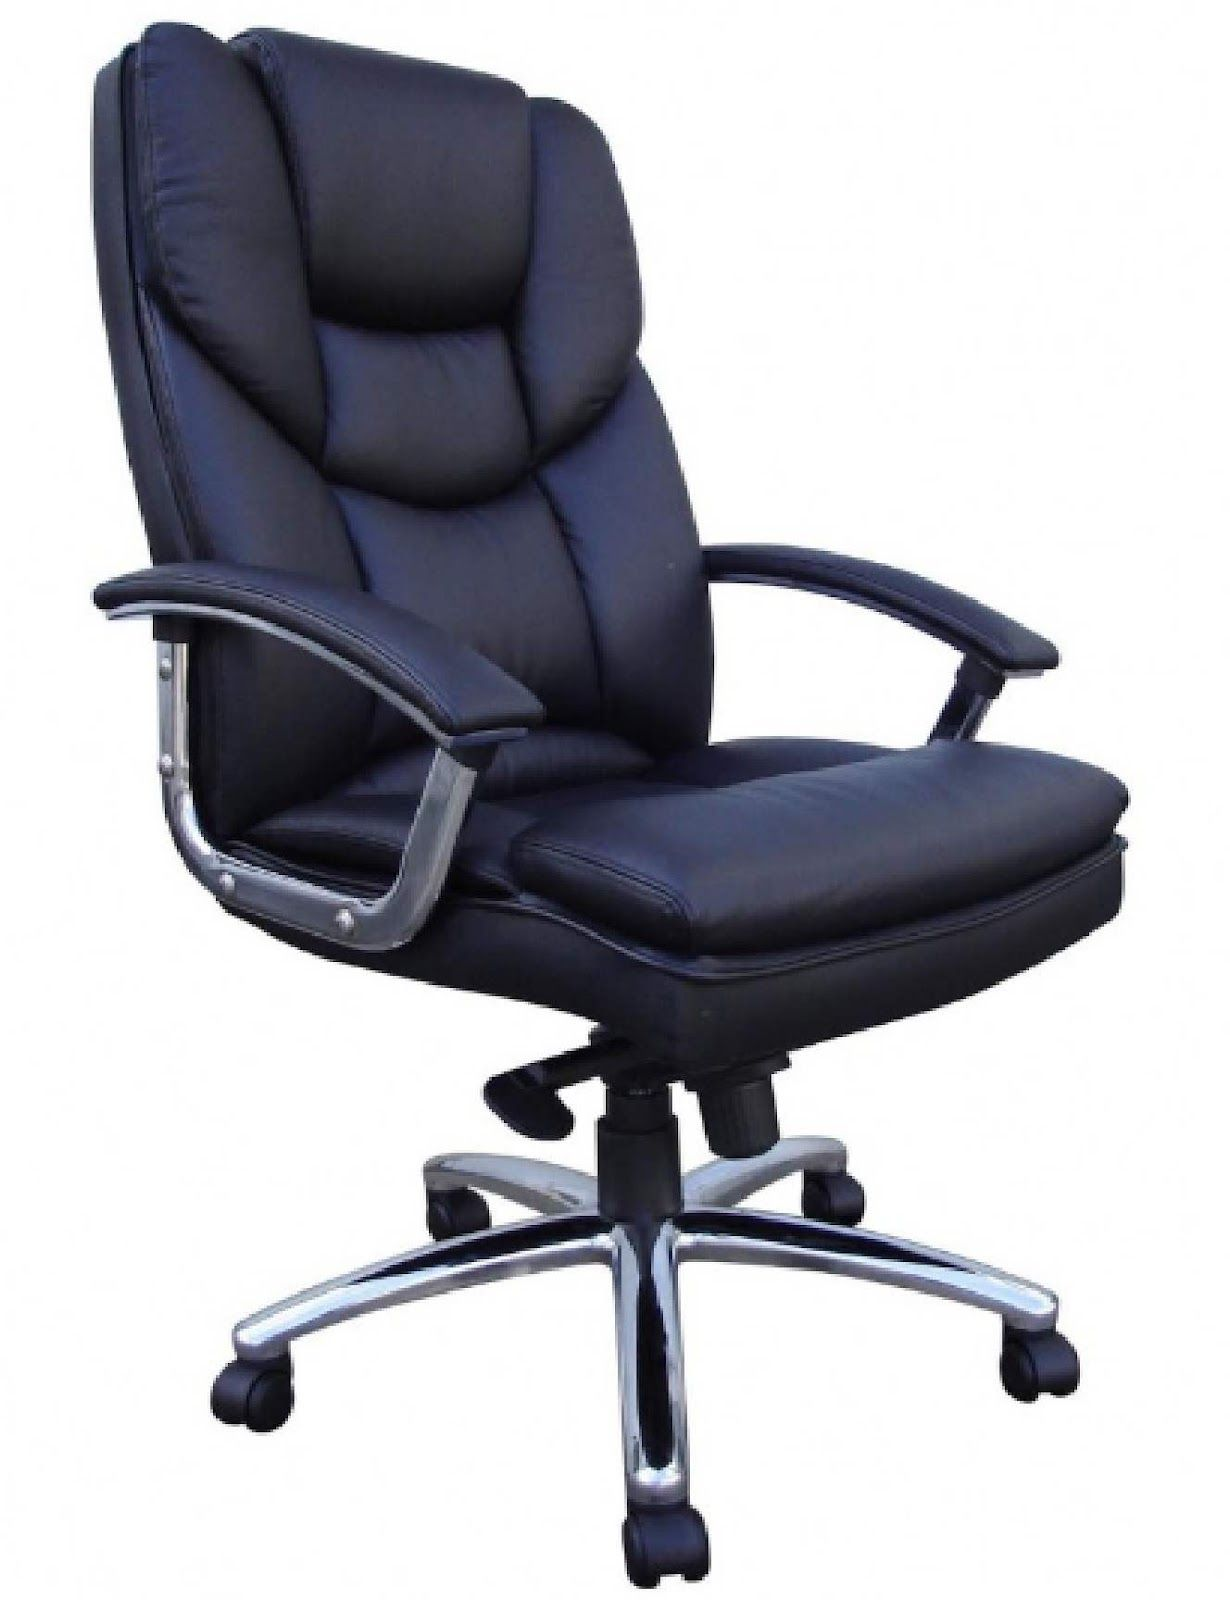 136 Reference Of Comfy Desk Chair Uk In 2020 Luxury Office Chairs Office Chair Desk Chair Comfy